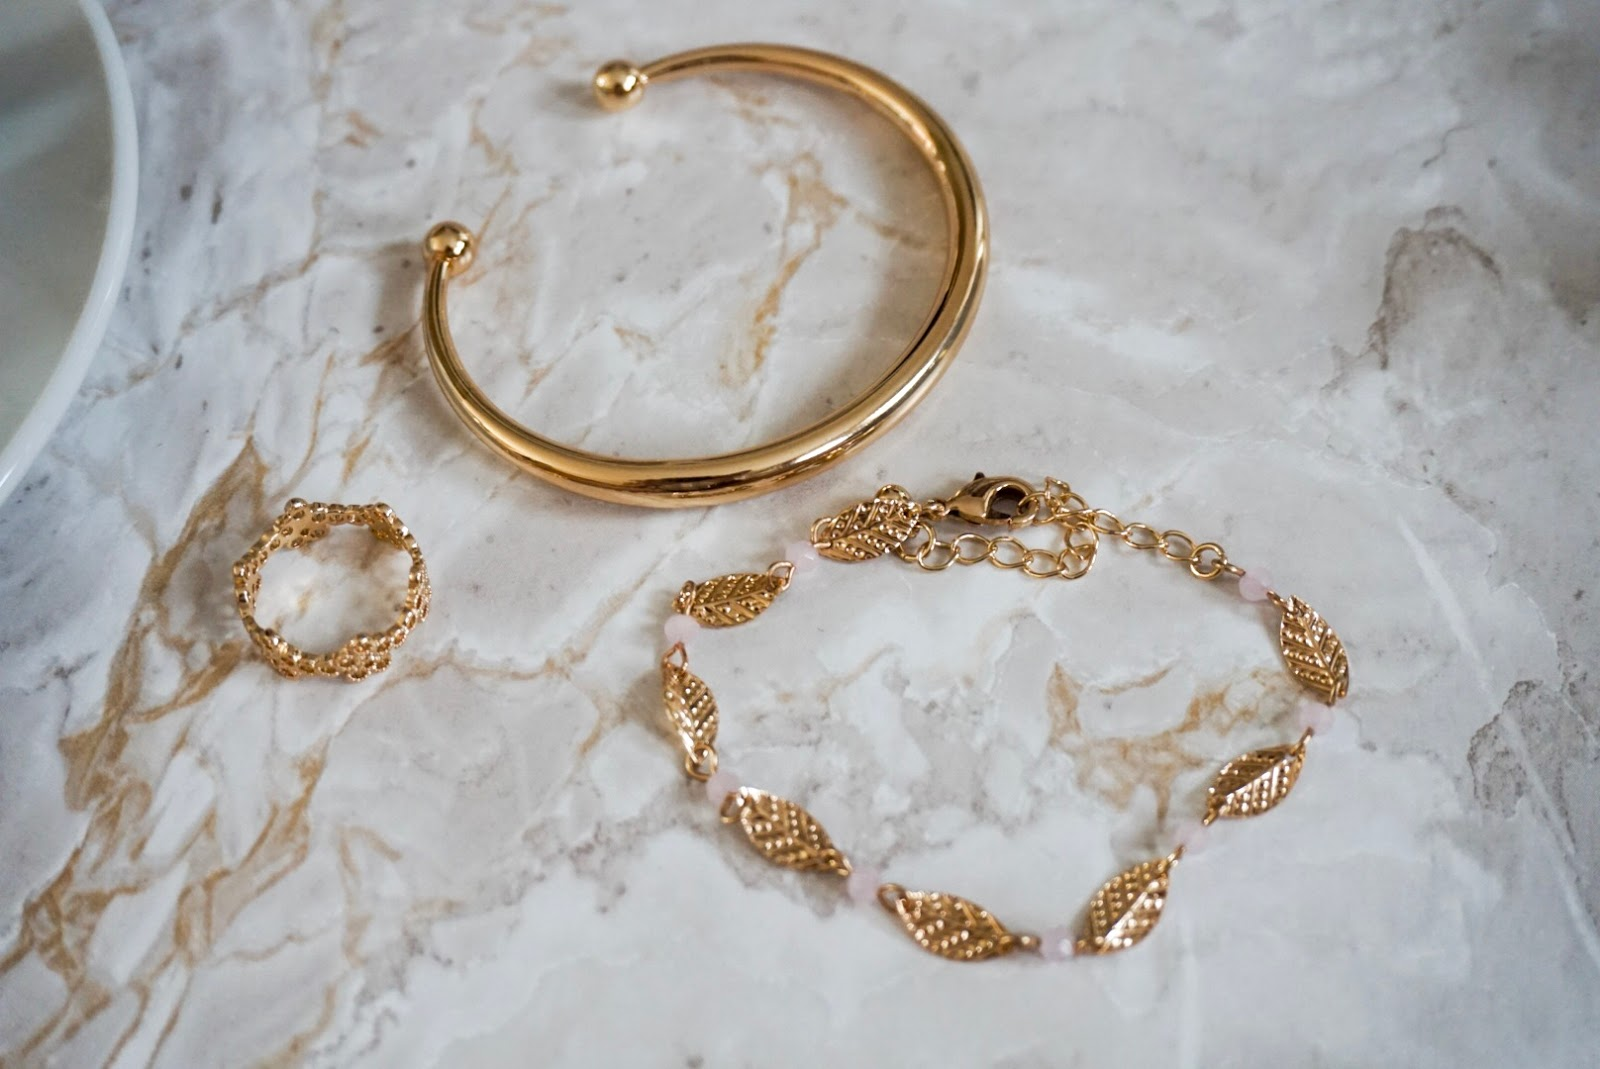 Fashion | Summer Jewellery - Going for Gold | Alicia á la mode